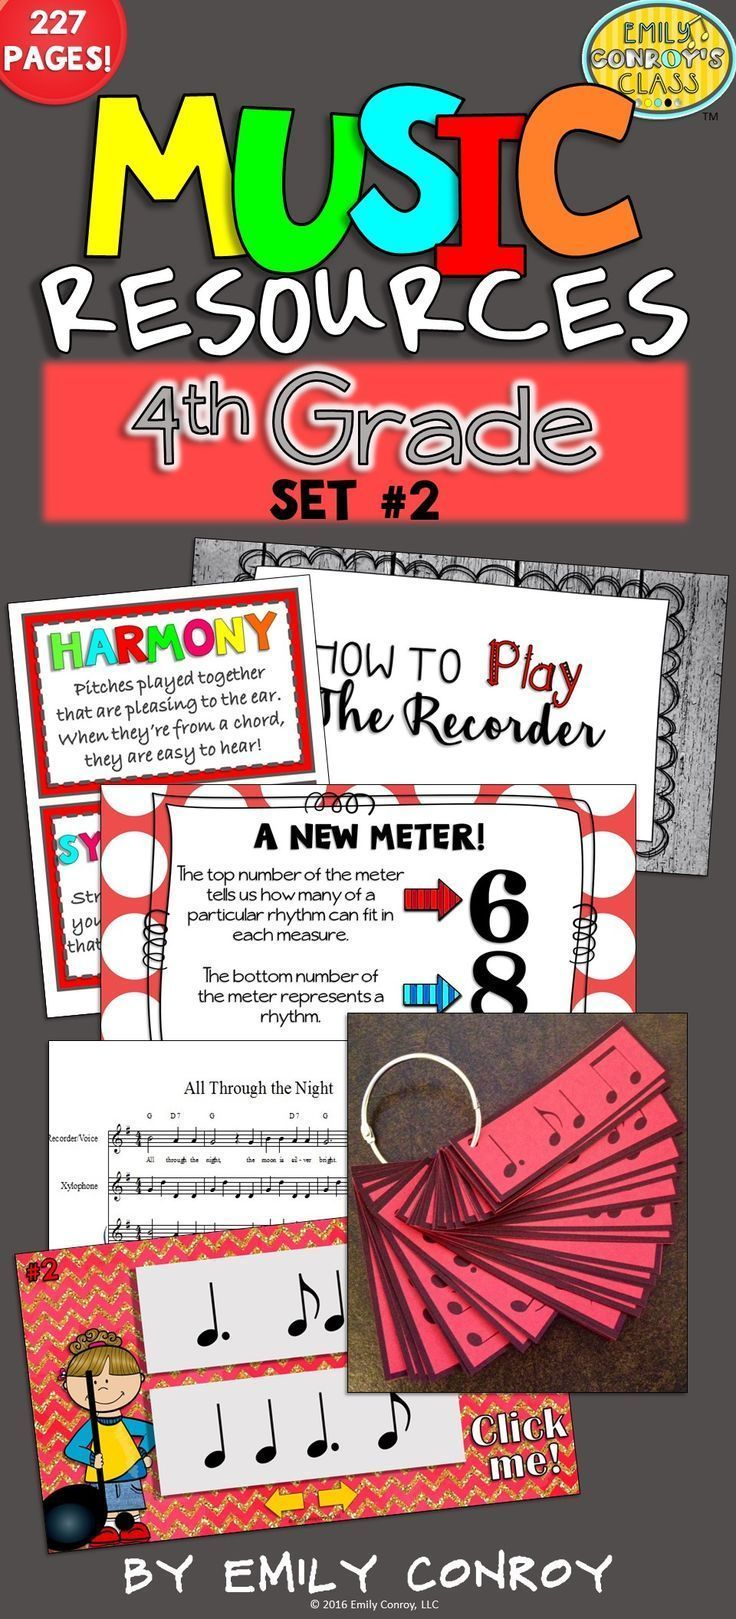 4th Grade Music Resources contains 227 pages of worksheets, PowerPoints, songs, and manipulatives for kindergarten music students! The songs even come with MP3 sound files!